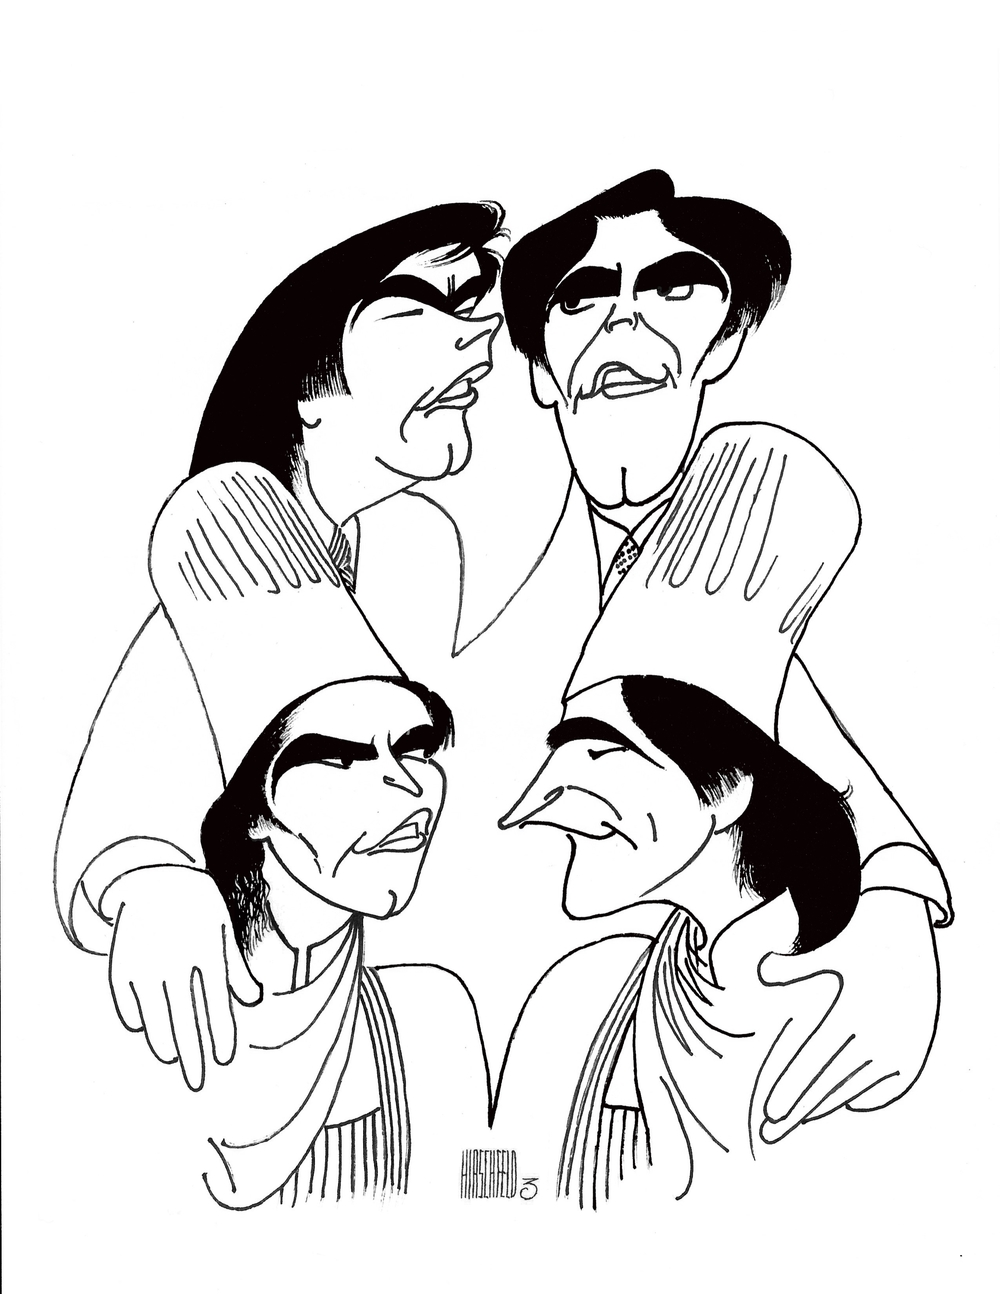 The Bitici Brothers are featured in this caricature by Al Hirschfeld in The New York Times on June 6, 1985. (3 Nina's)